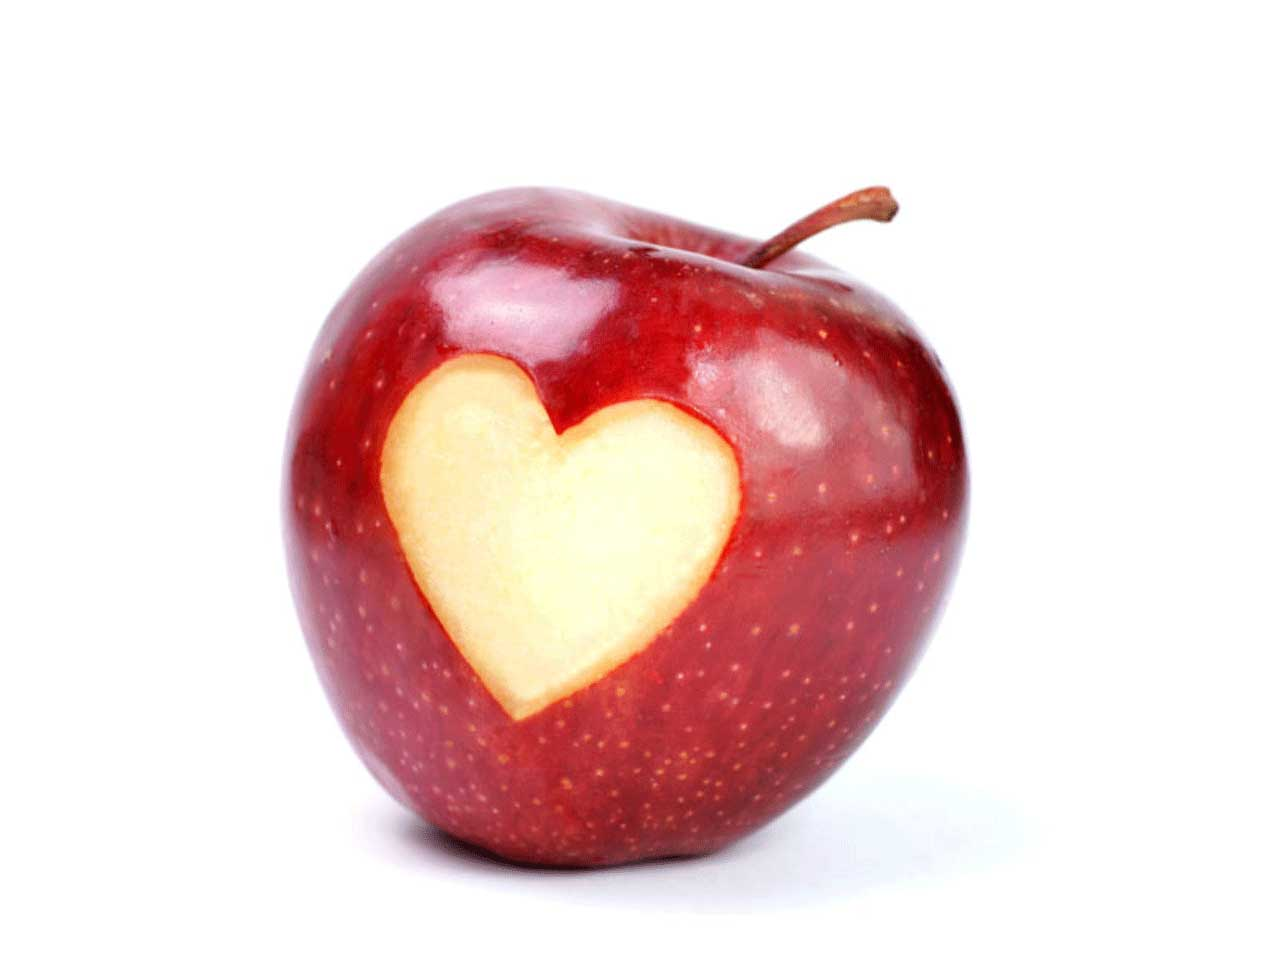 Apple with a heart cut out of it